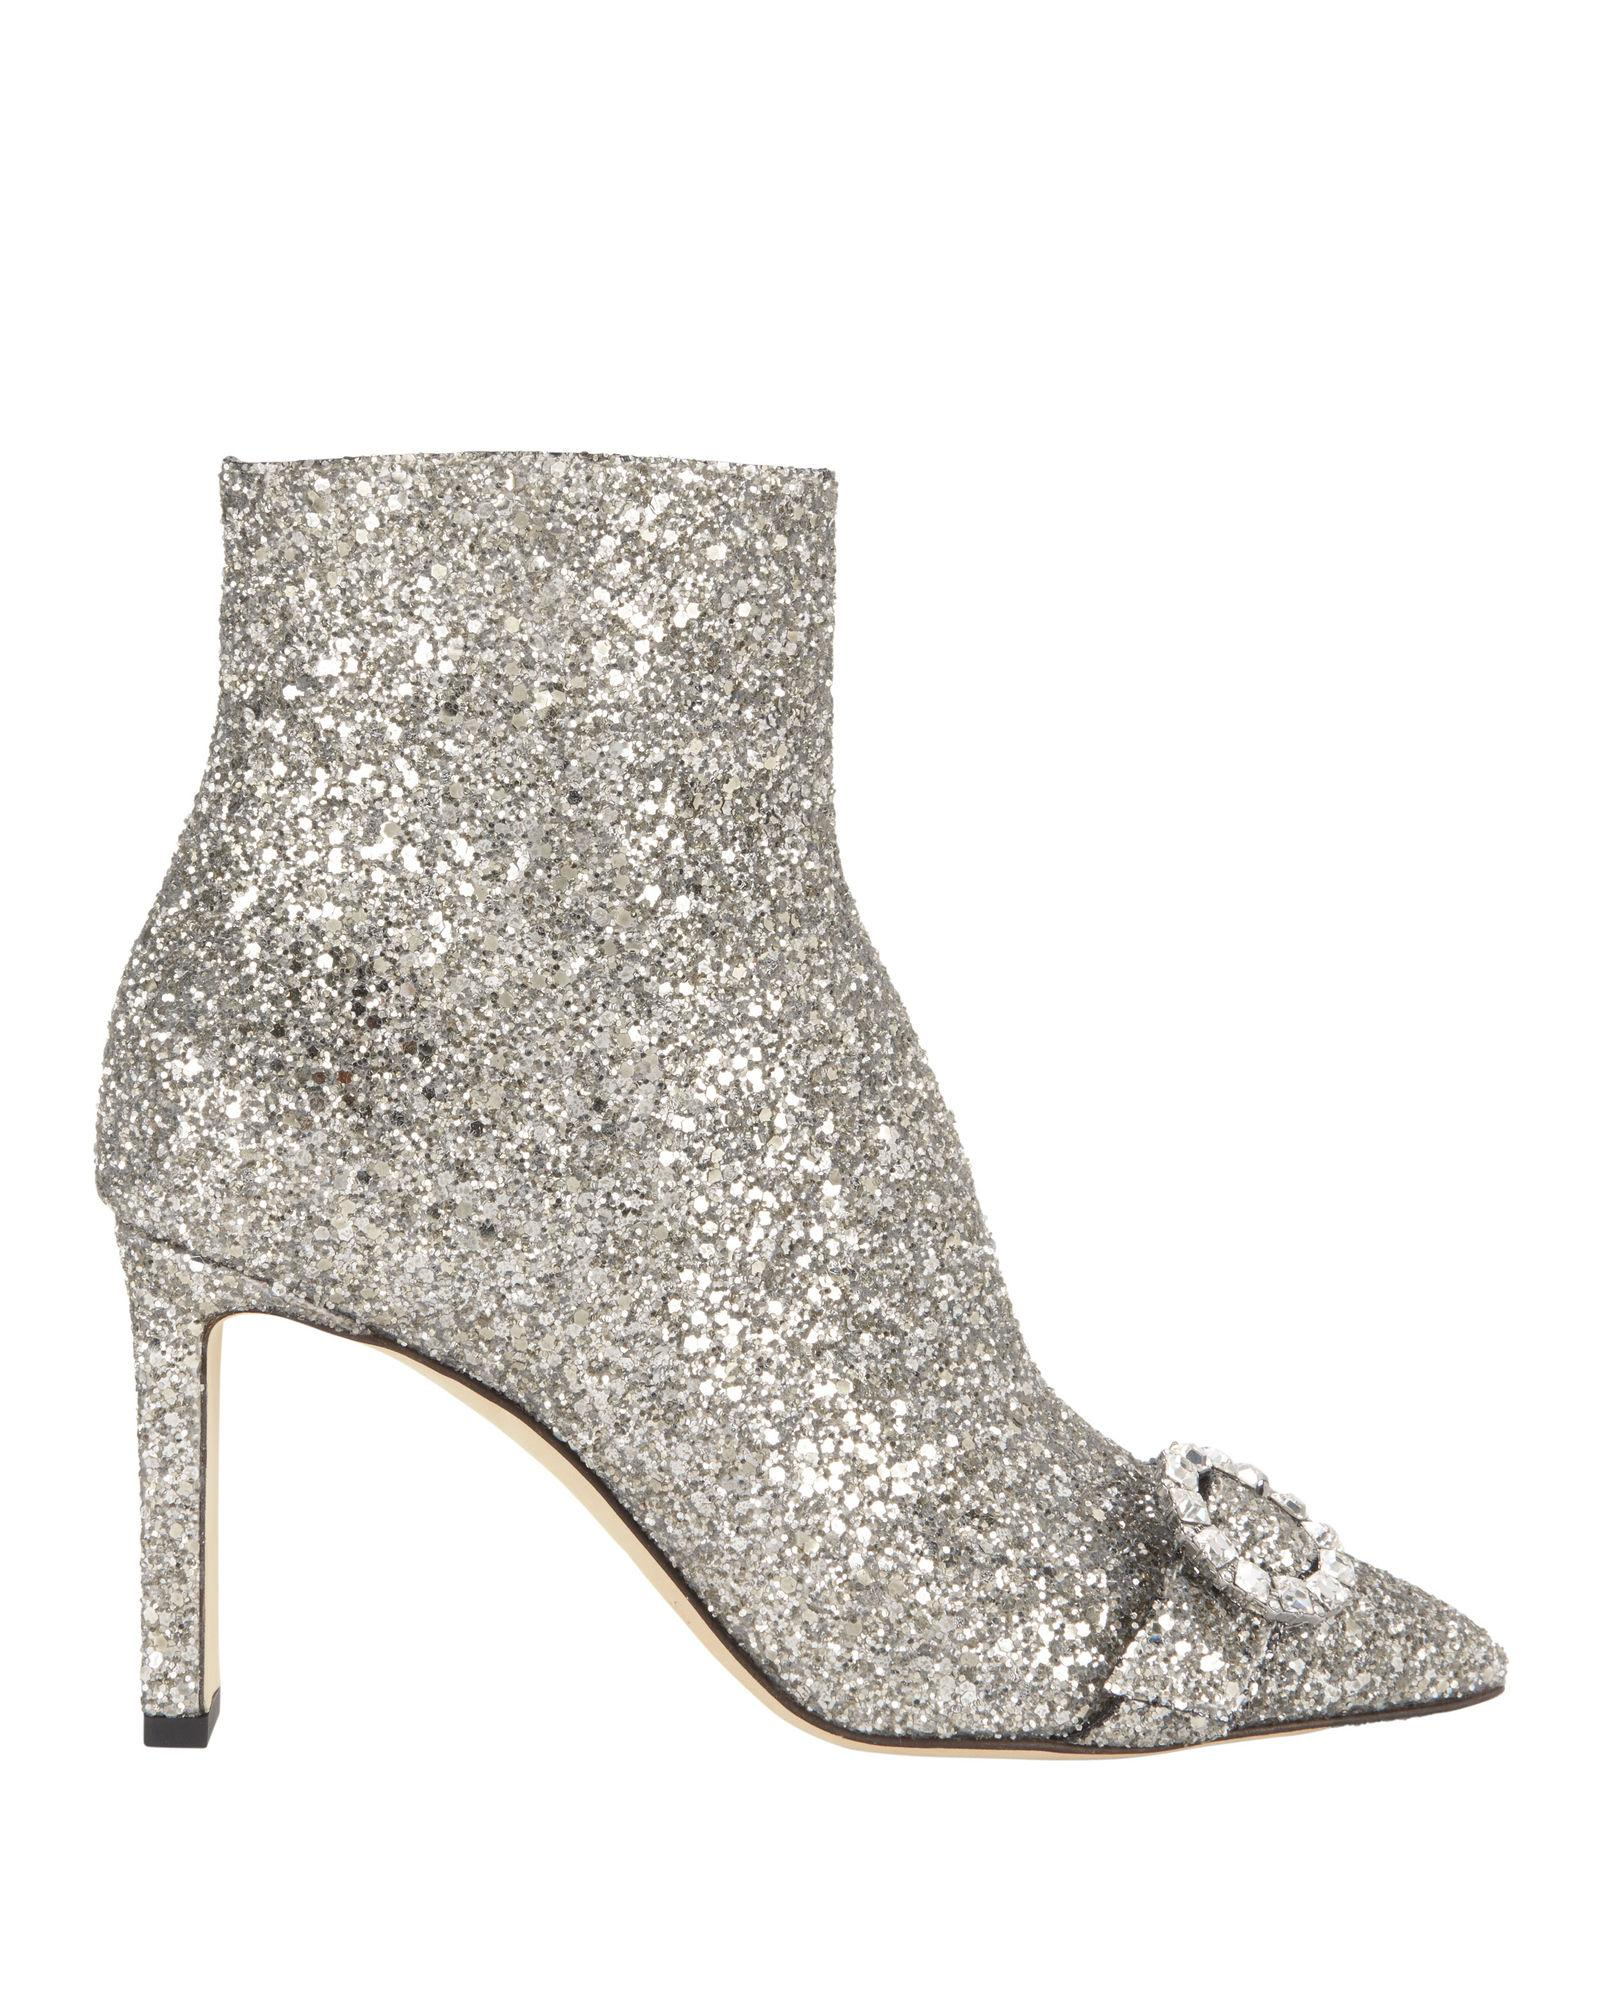 64a049955a95 Jimmy Choo Hanover Glitter 65Mm Booties In Gray